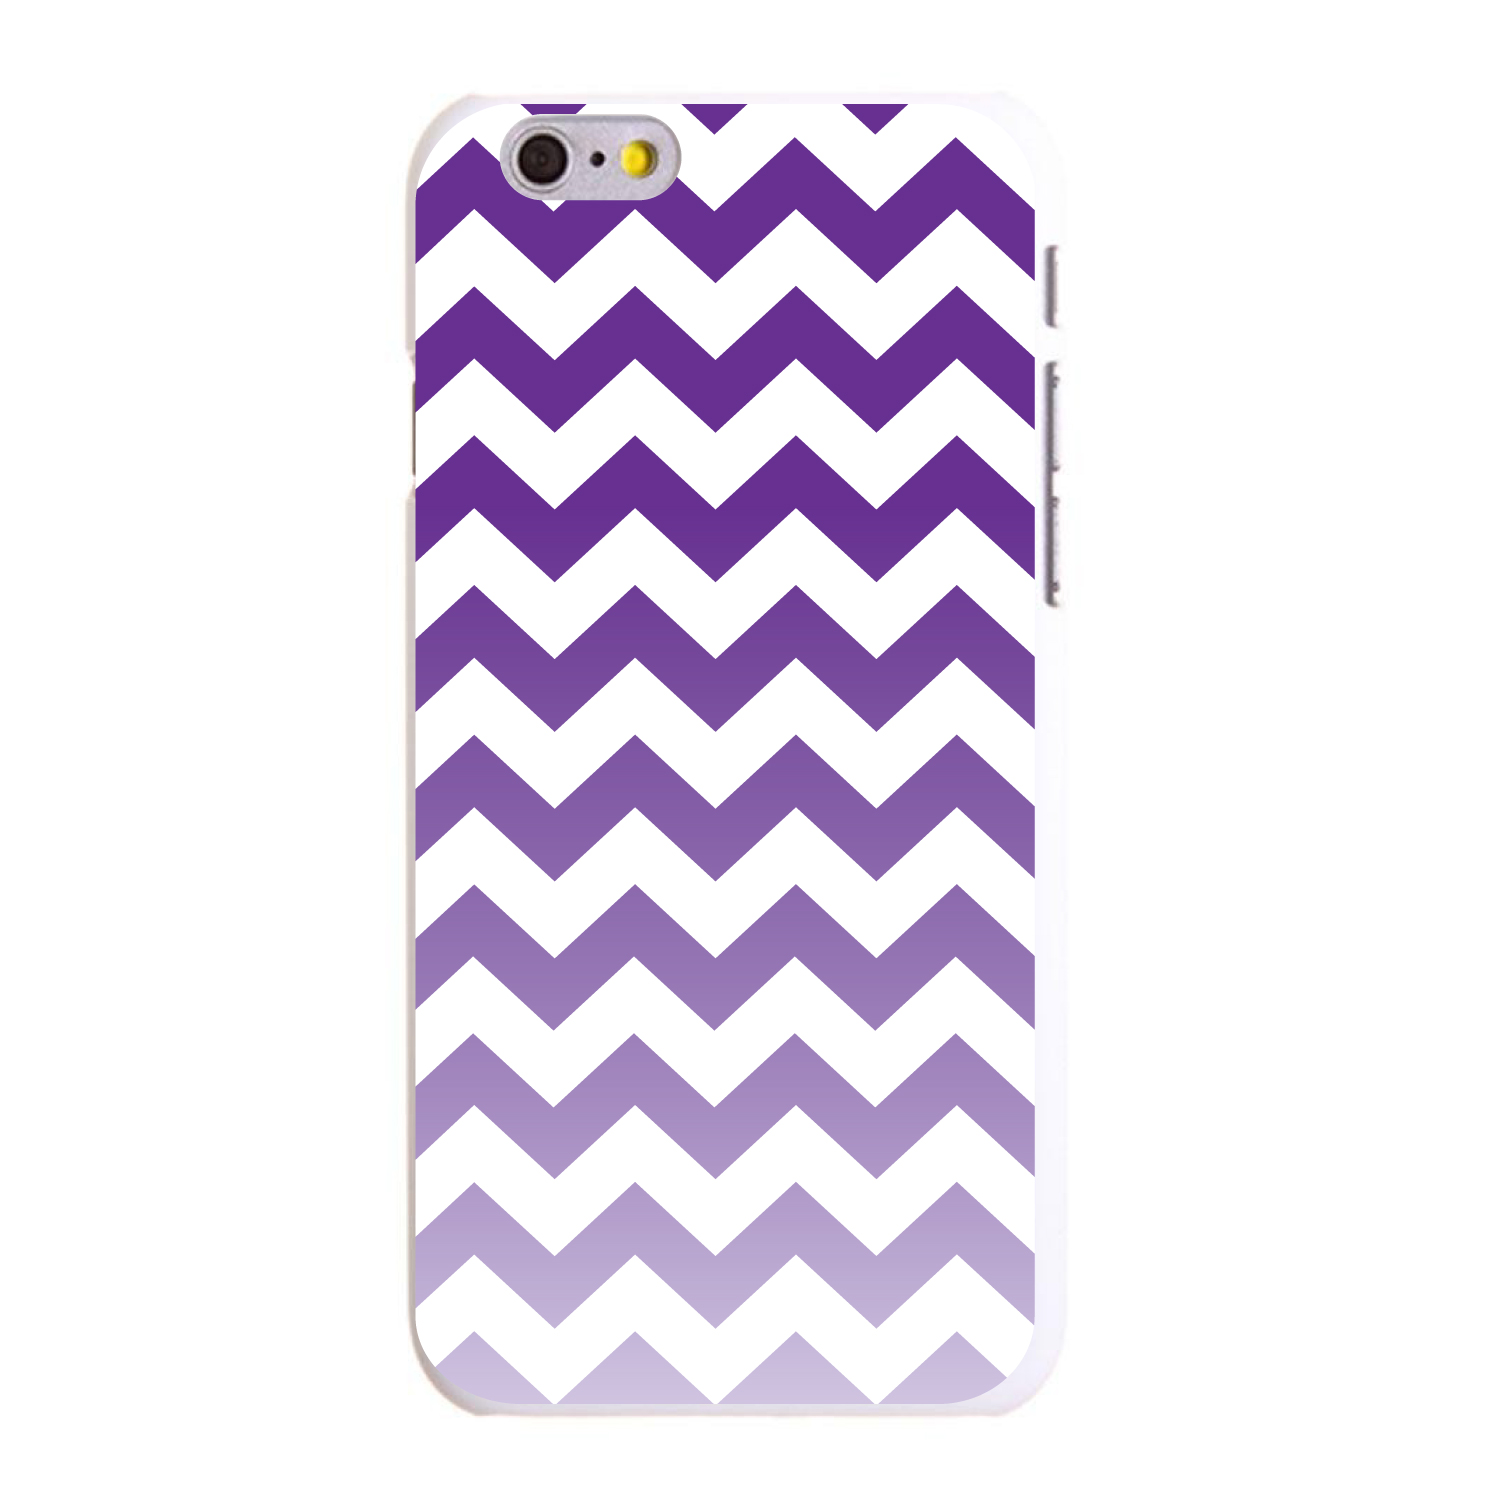 "CUSTOM White Hard Plastic Snap-On Case for Apple iPhone 6 / 6S (4.7"" Screen) - White Purple Fade Chevron Stripes"